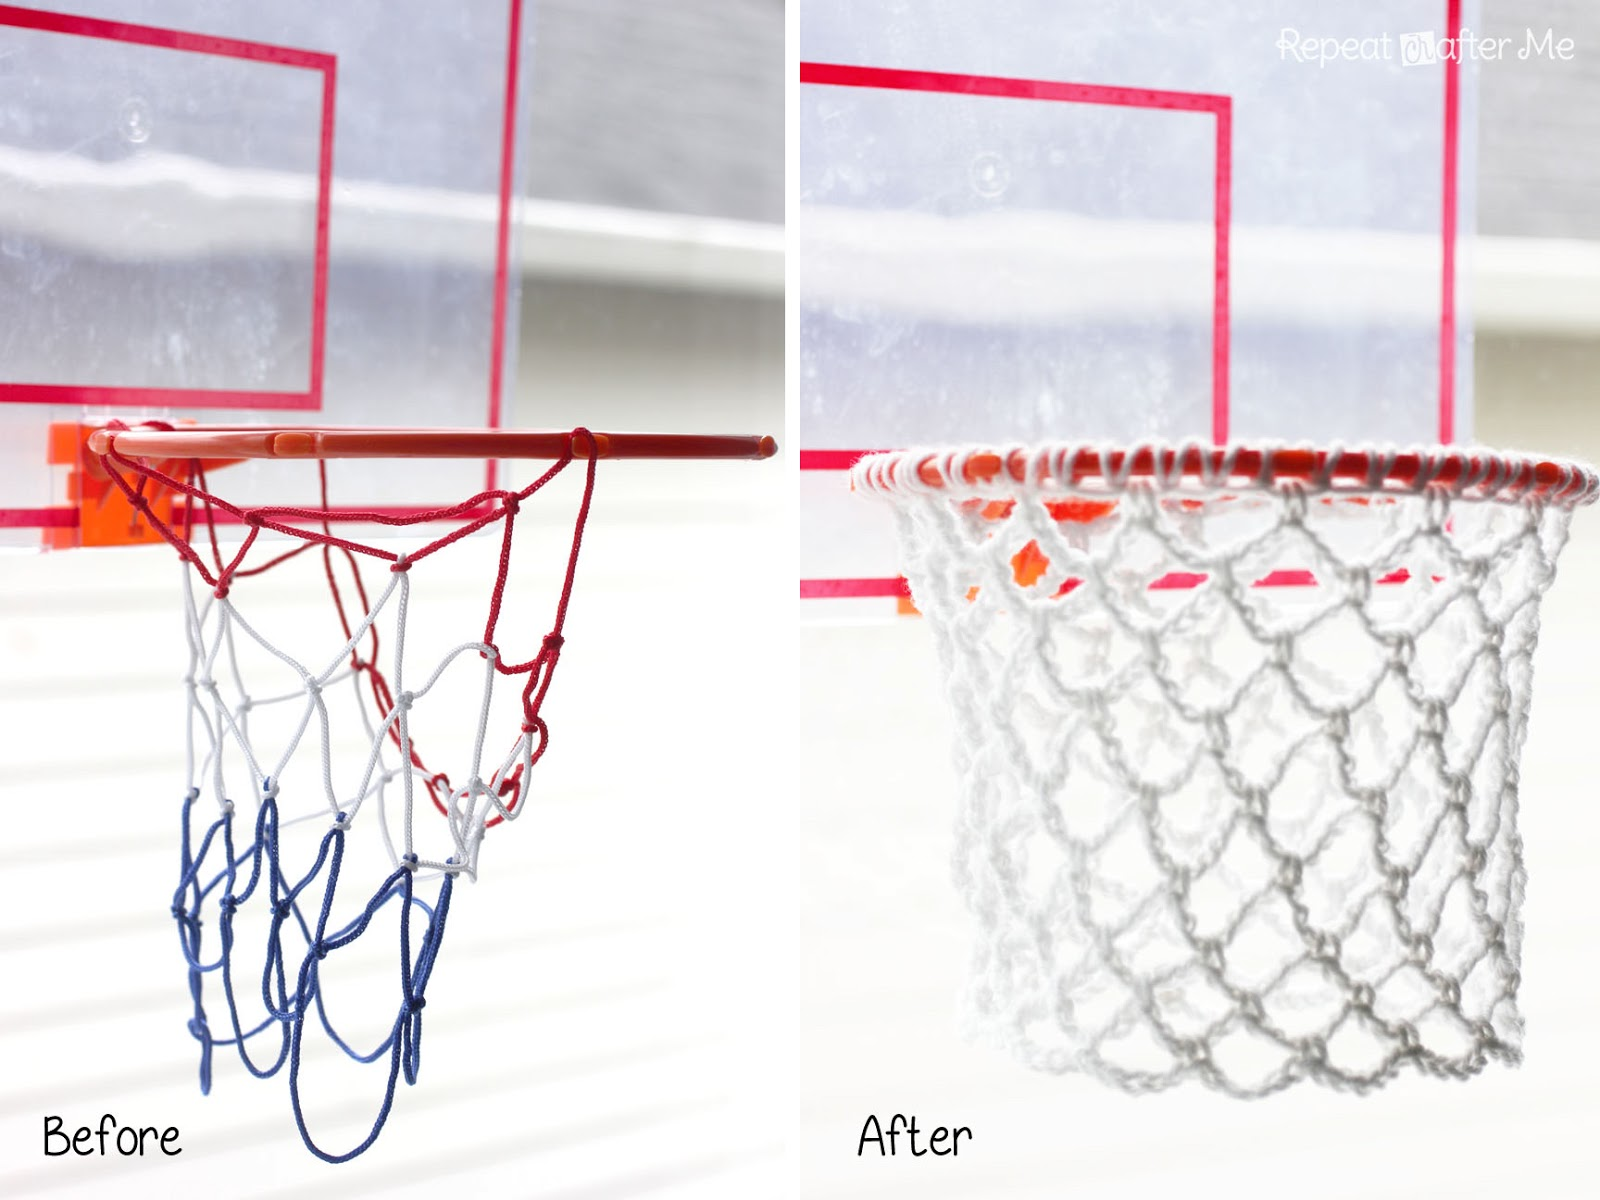 Crochet basketball hoop net repeat crafter me for How to build a basketball goal